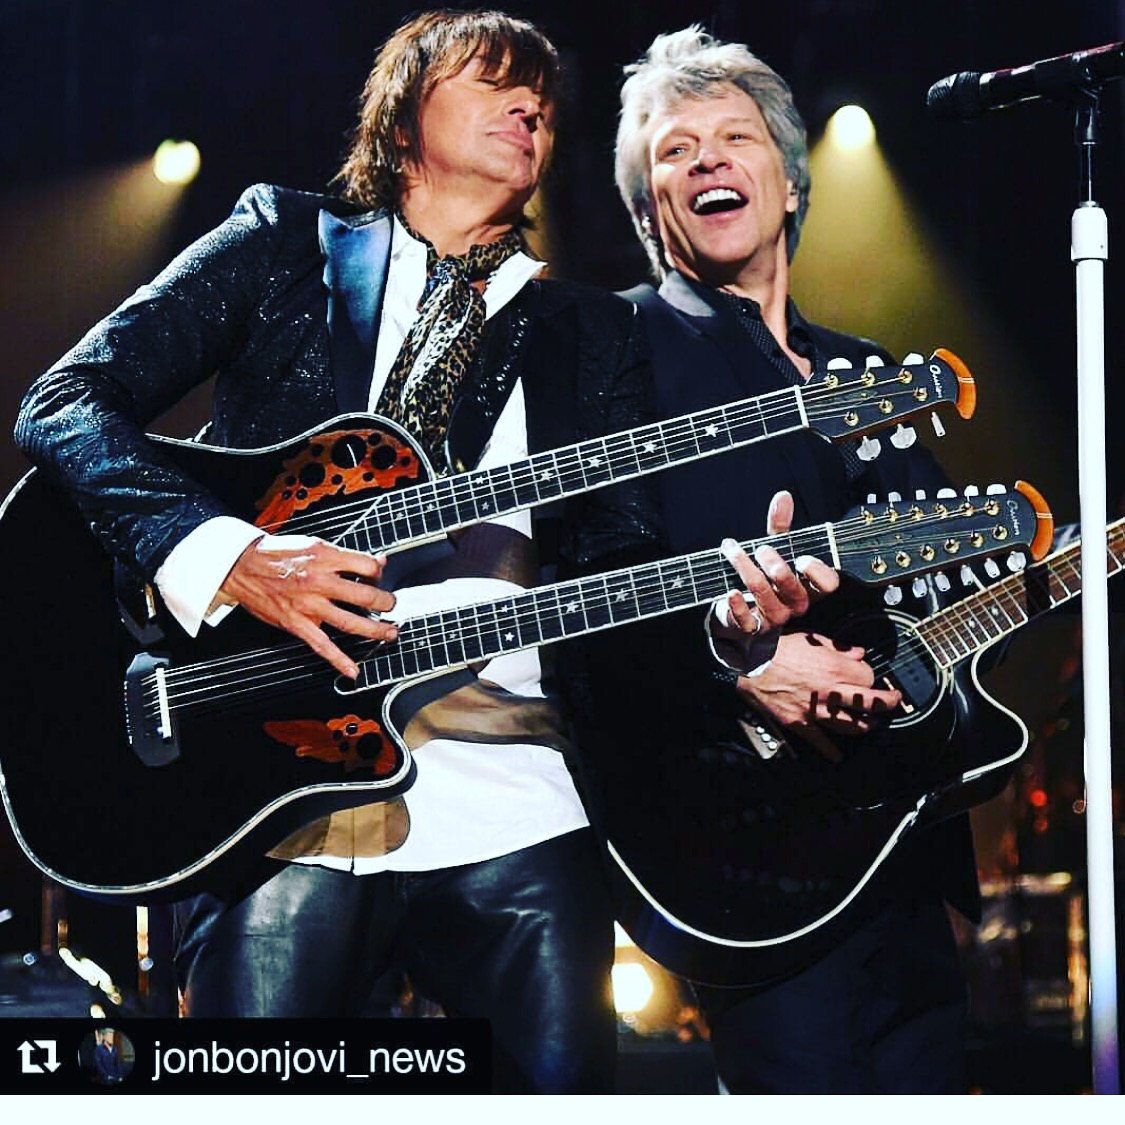 Bon Jovi Hall of Fame Performance 2018 - Richie Sambora is wearing his V&G custom guitar strap.